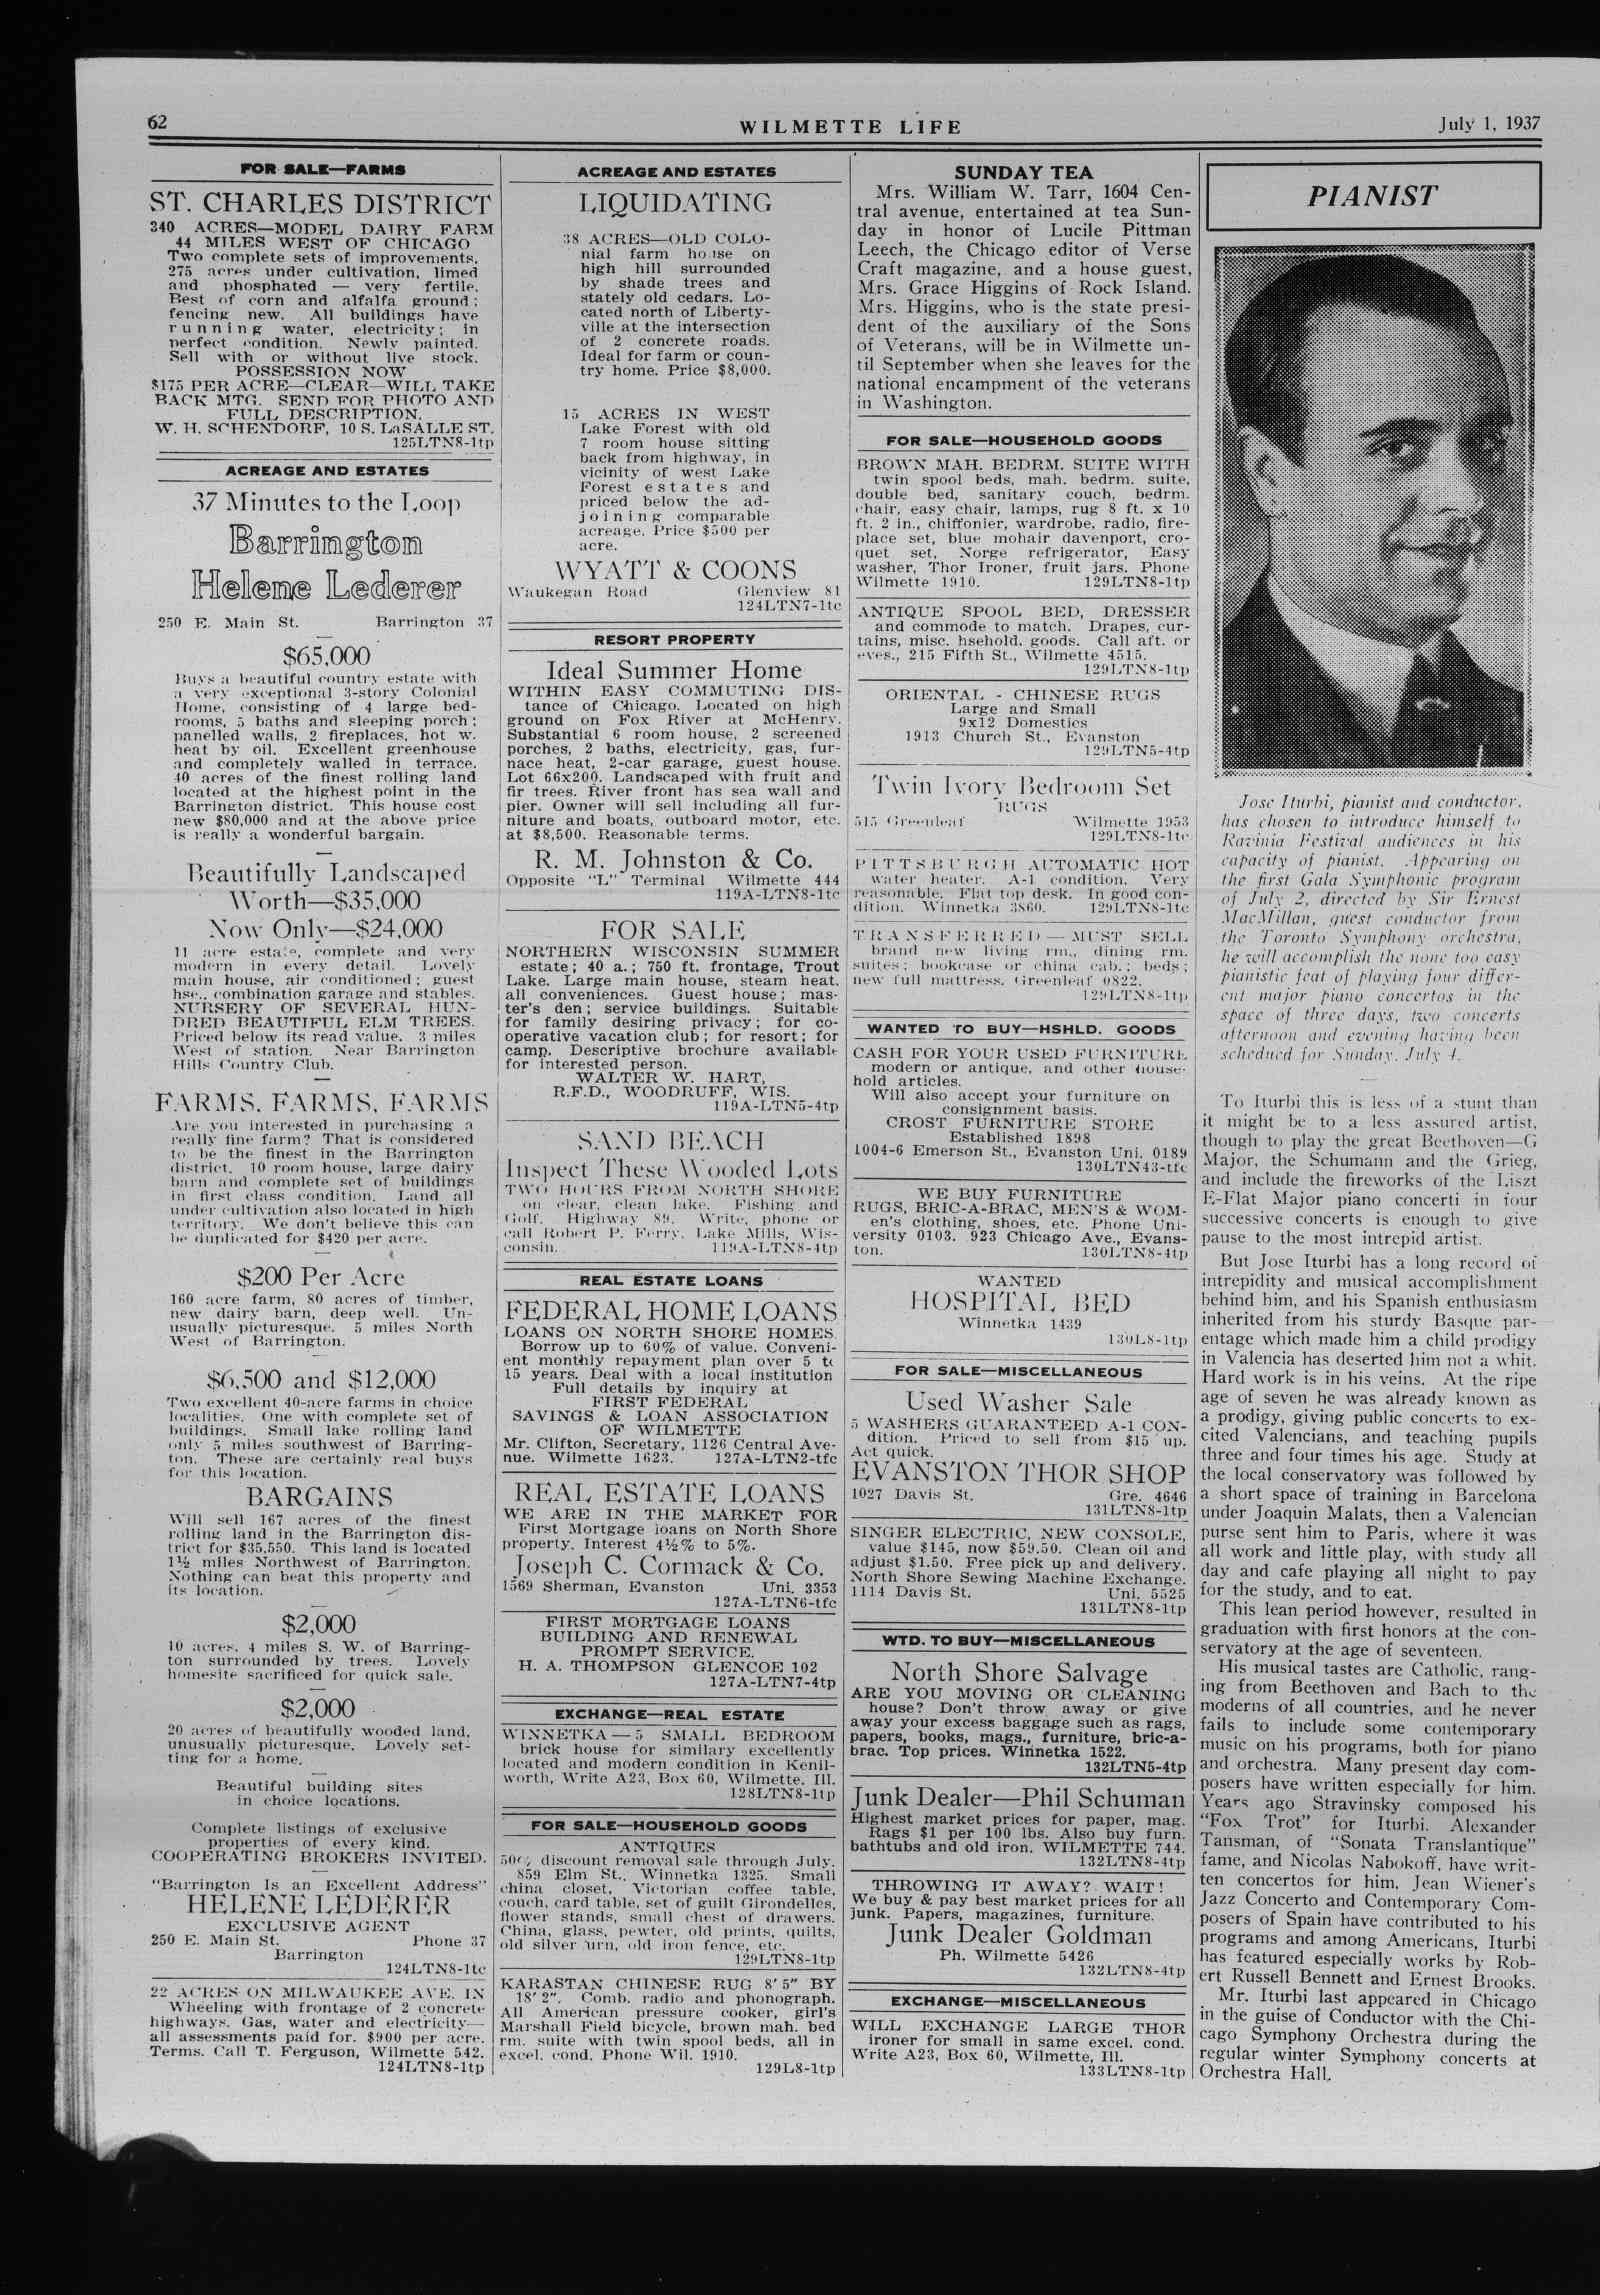 Wilmette Life (Wilmette, Illinois), 1 Jul 1937